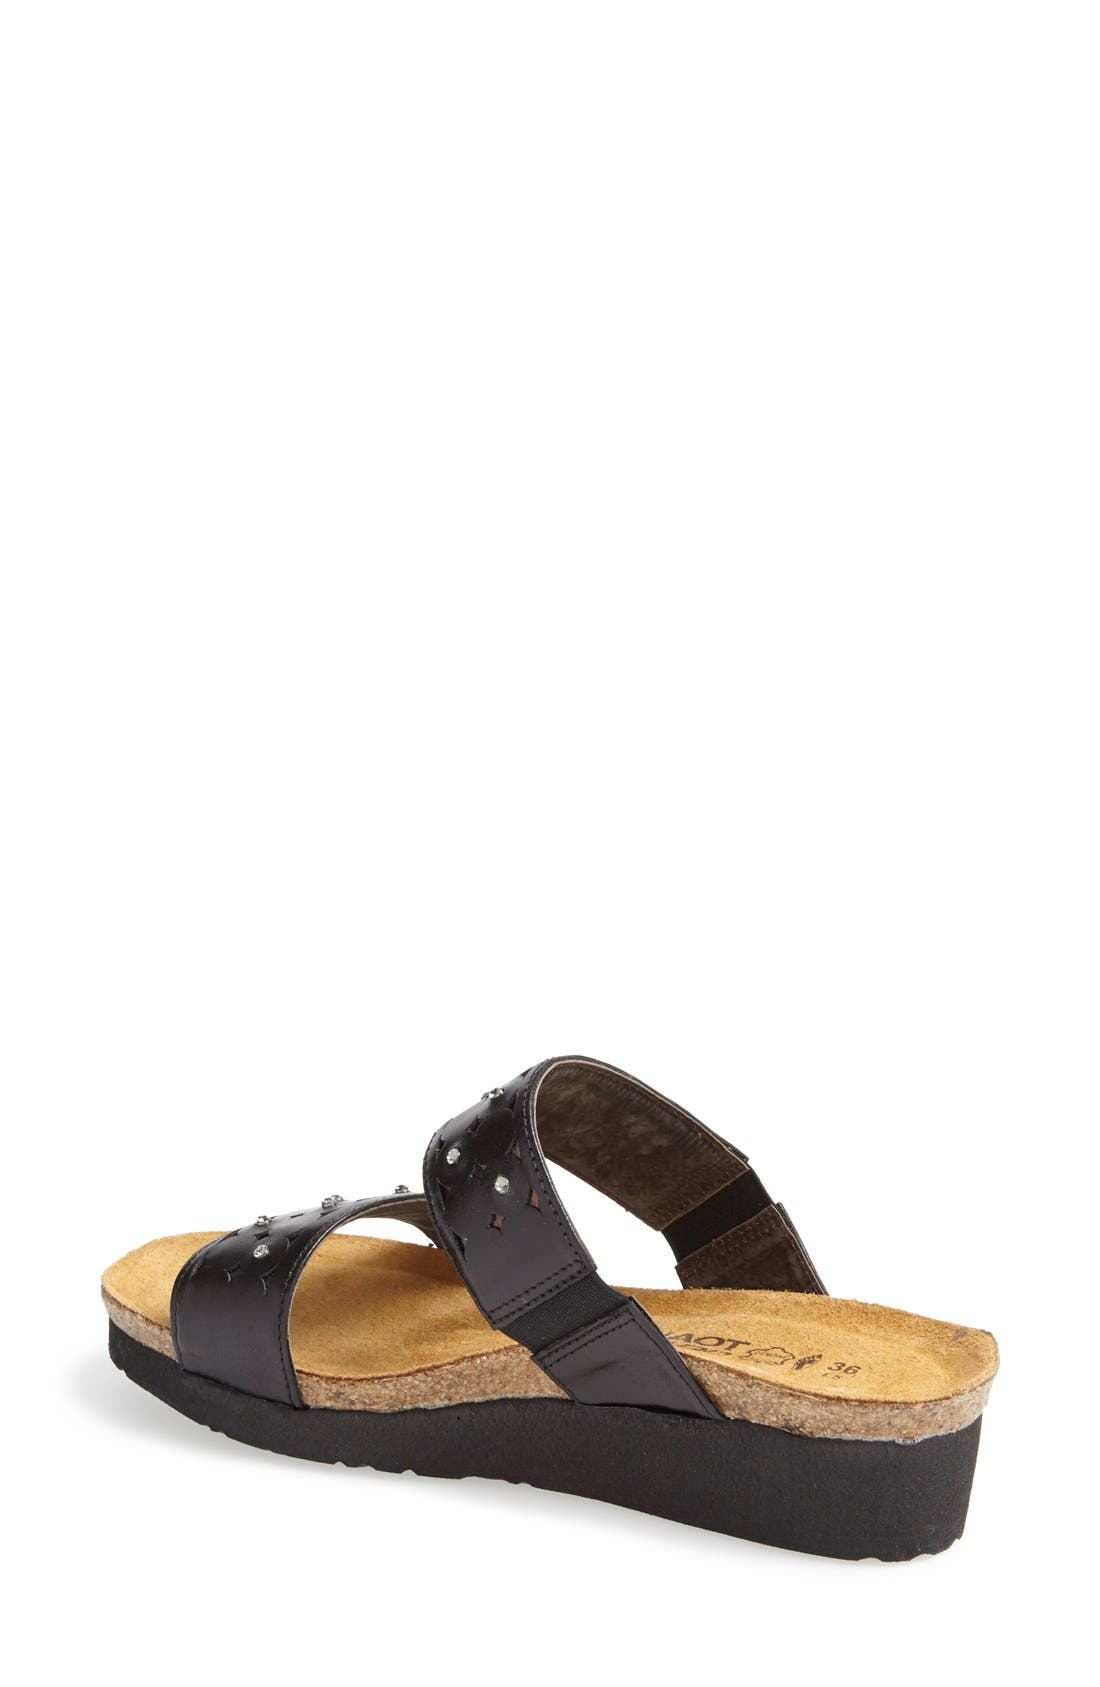 'Susan' Sandal,                             Alternate thumbnail 2, color,                             BLACK/ BROWN